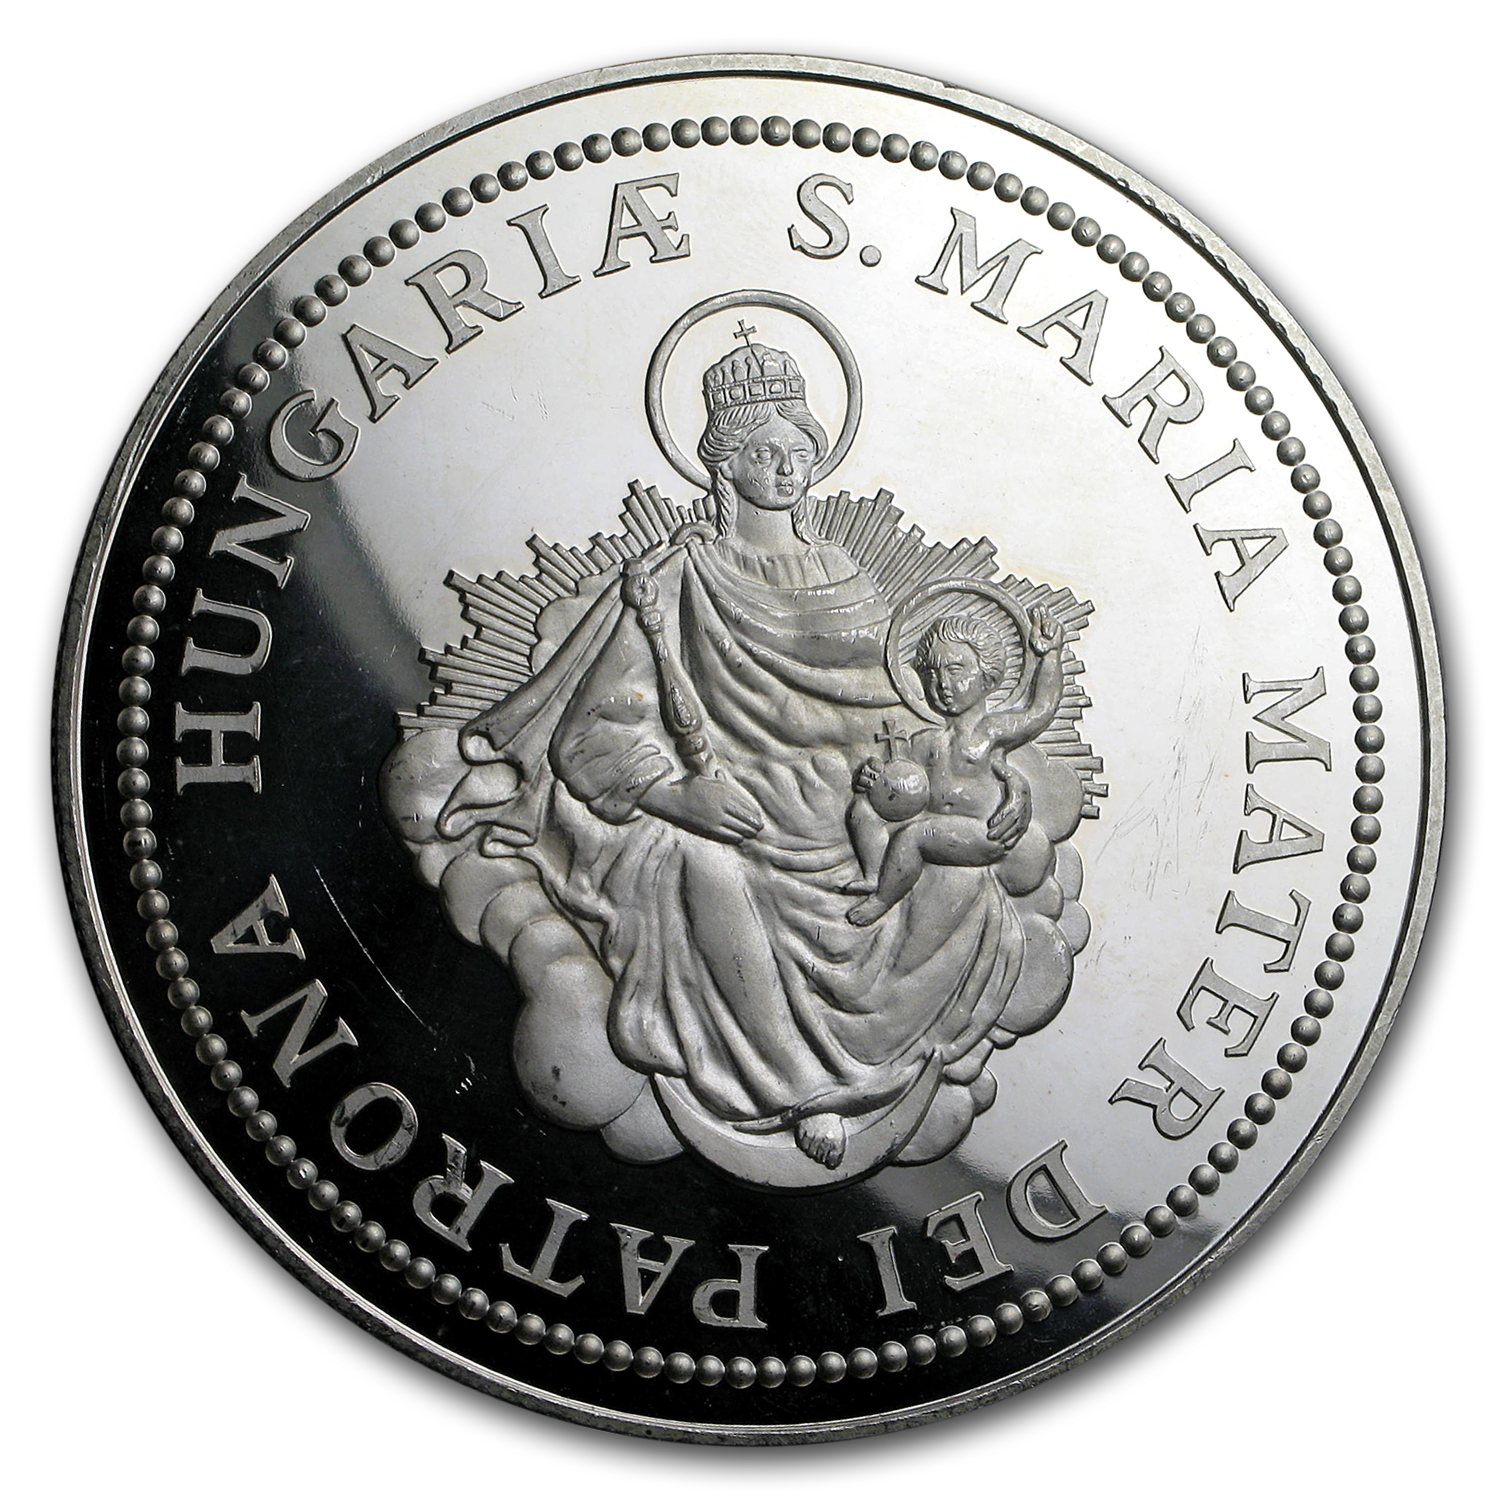 5 oz Silver Round - Hungary Madonna & Child Proof (5 Uncia)